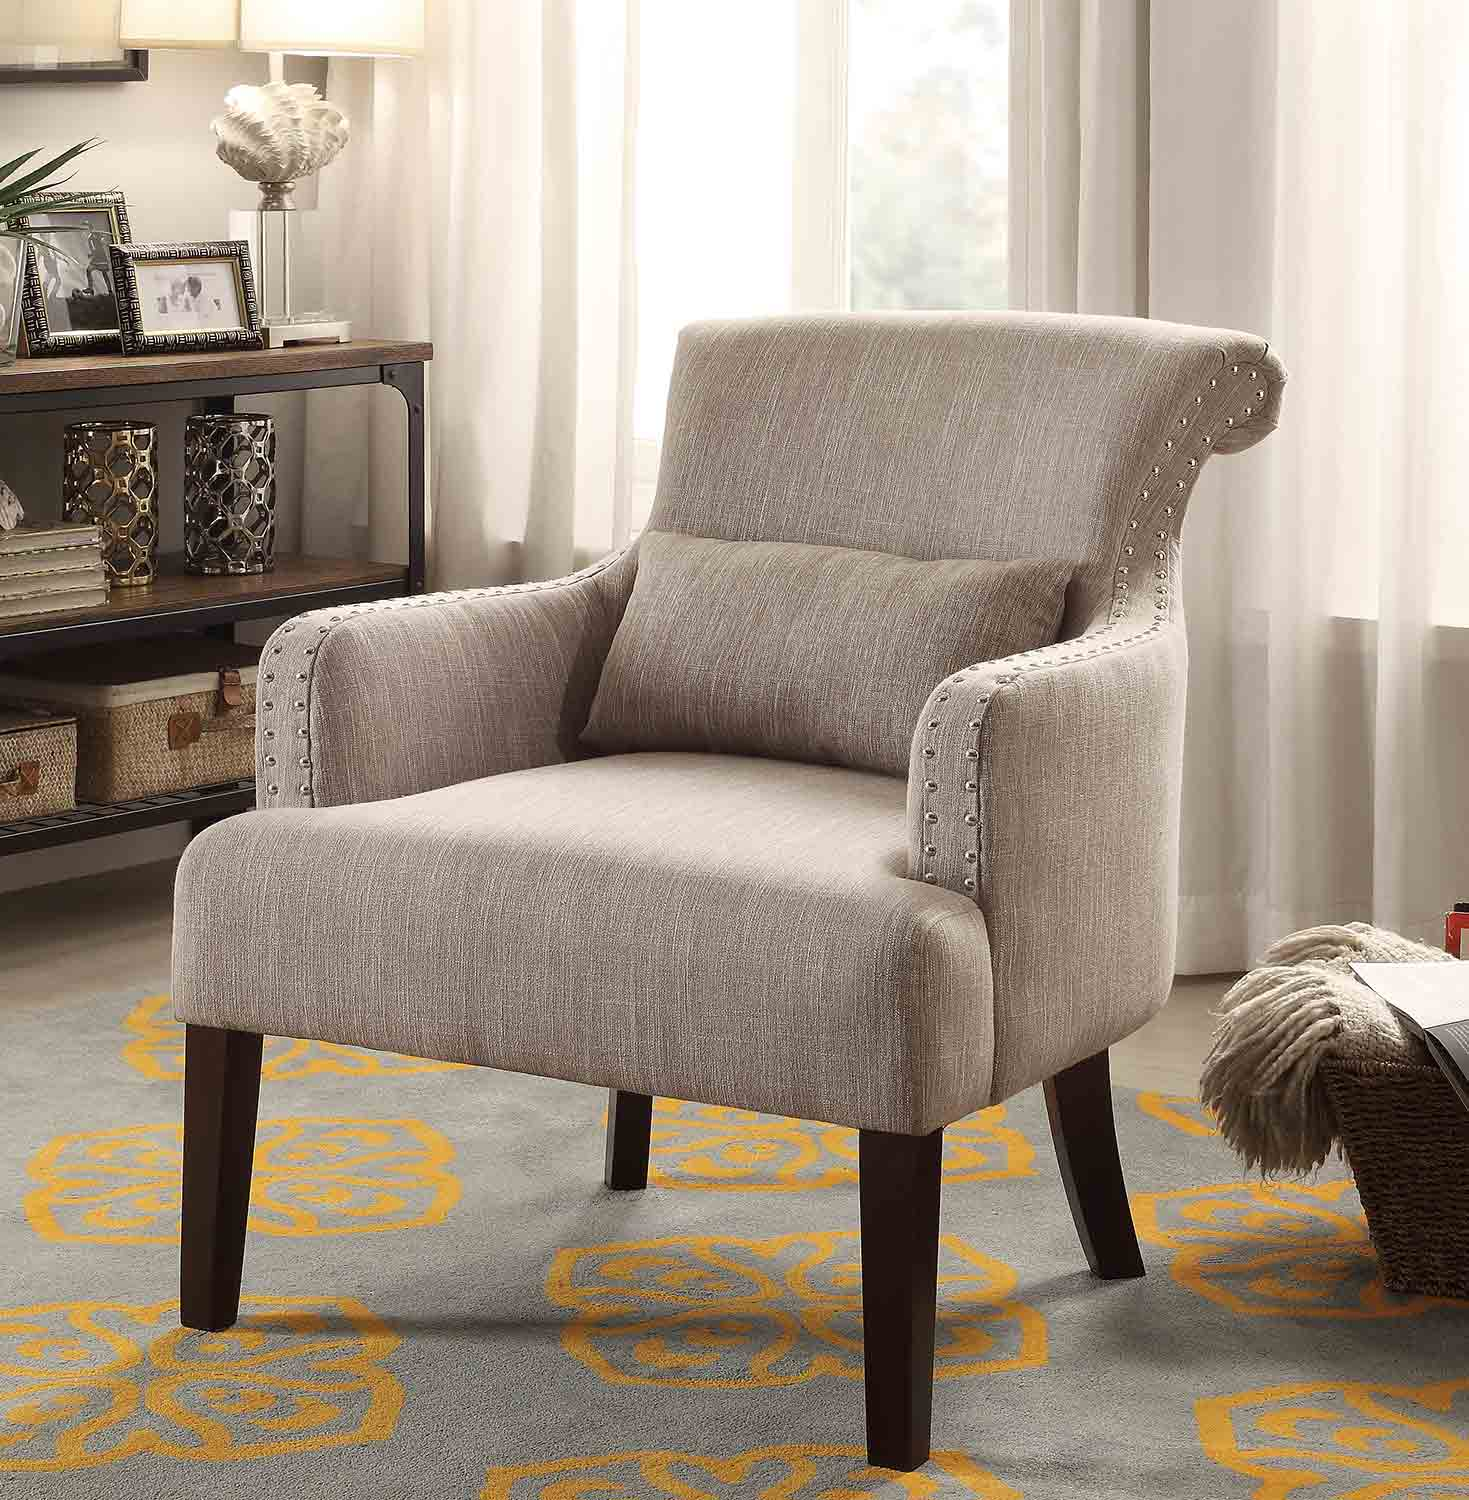 Homelegance Reedley Accent Chair with 1 Kidney Pillow - Light Brown